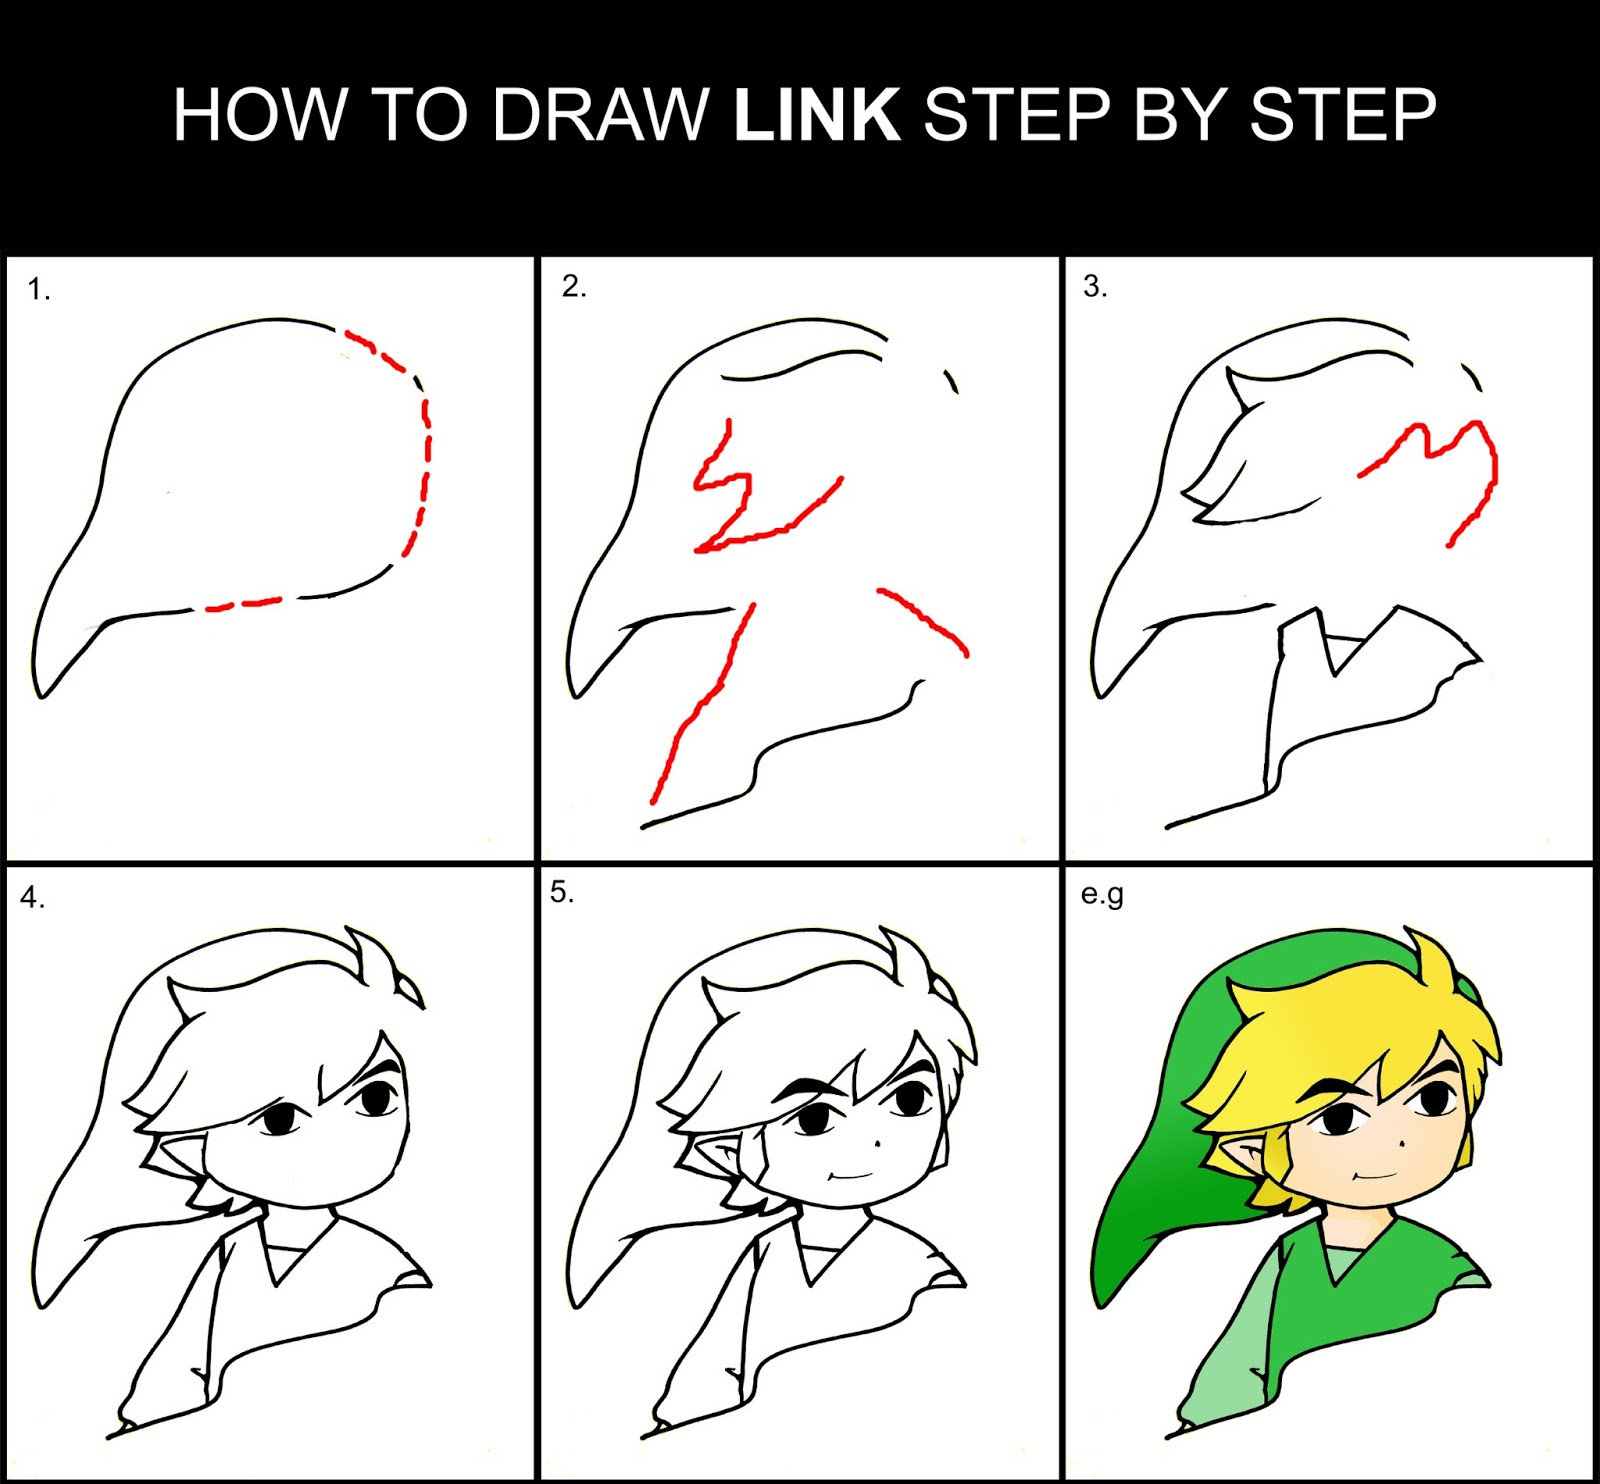 Daryl Hobson Artwork: How To Draw Link Step By Step Drawing Guide